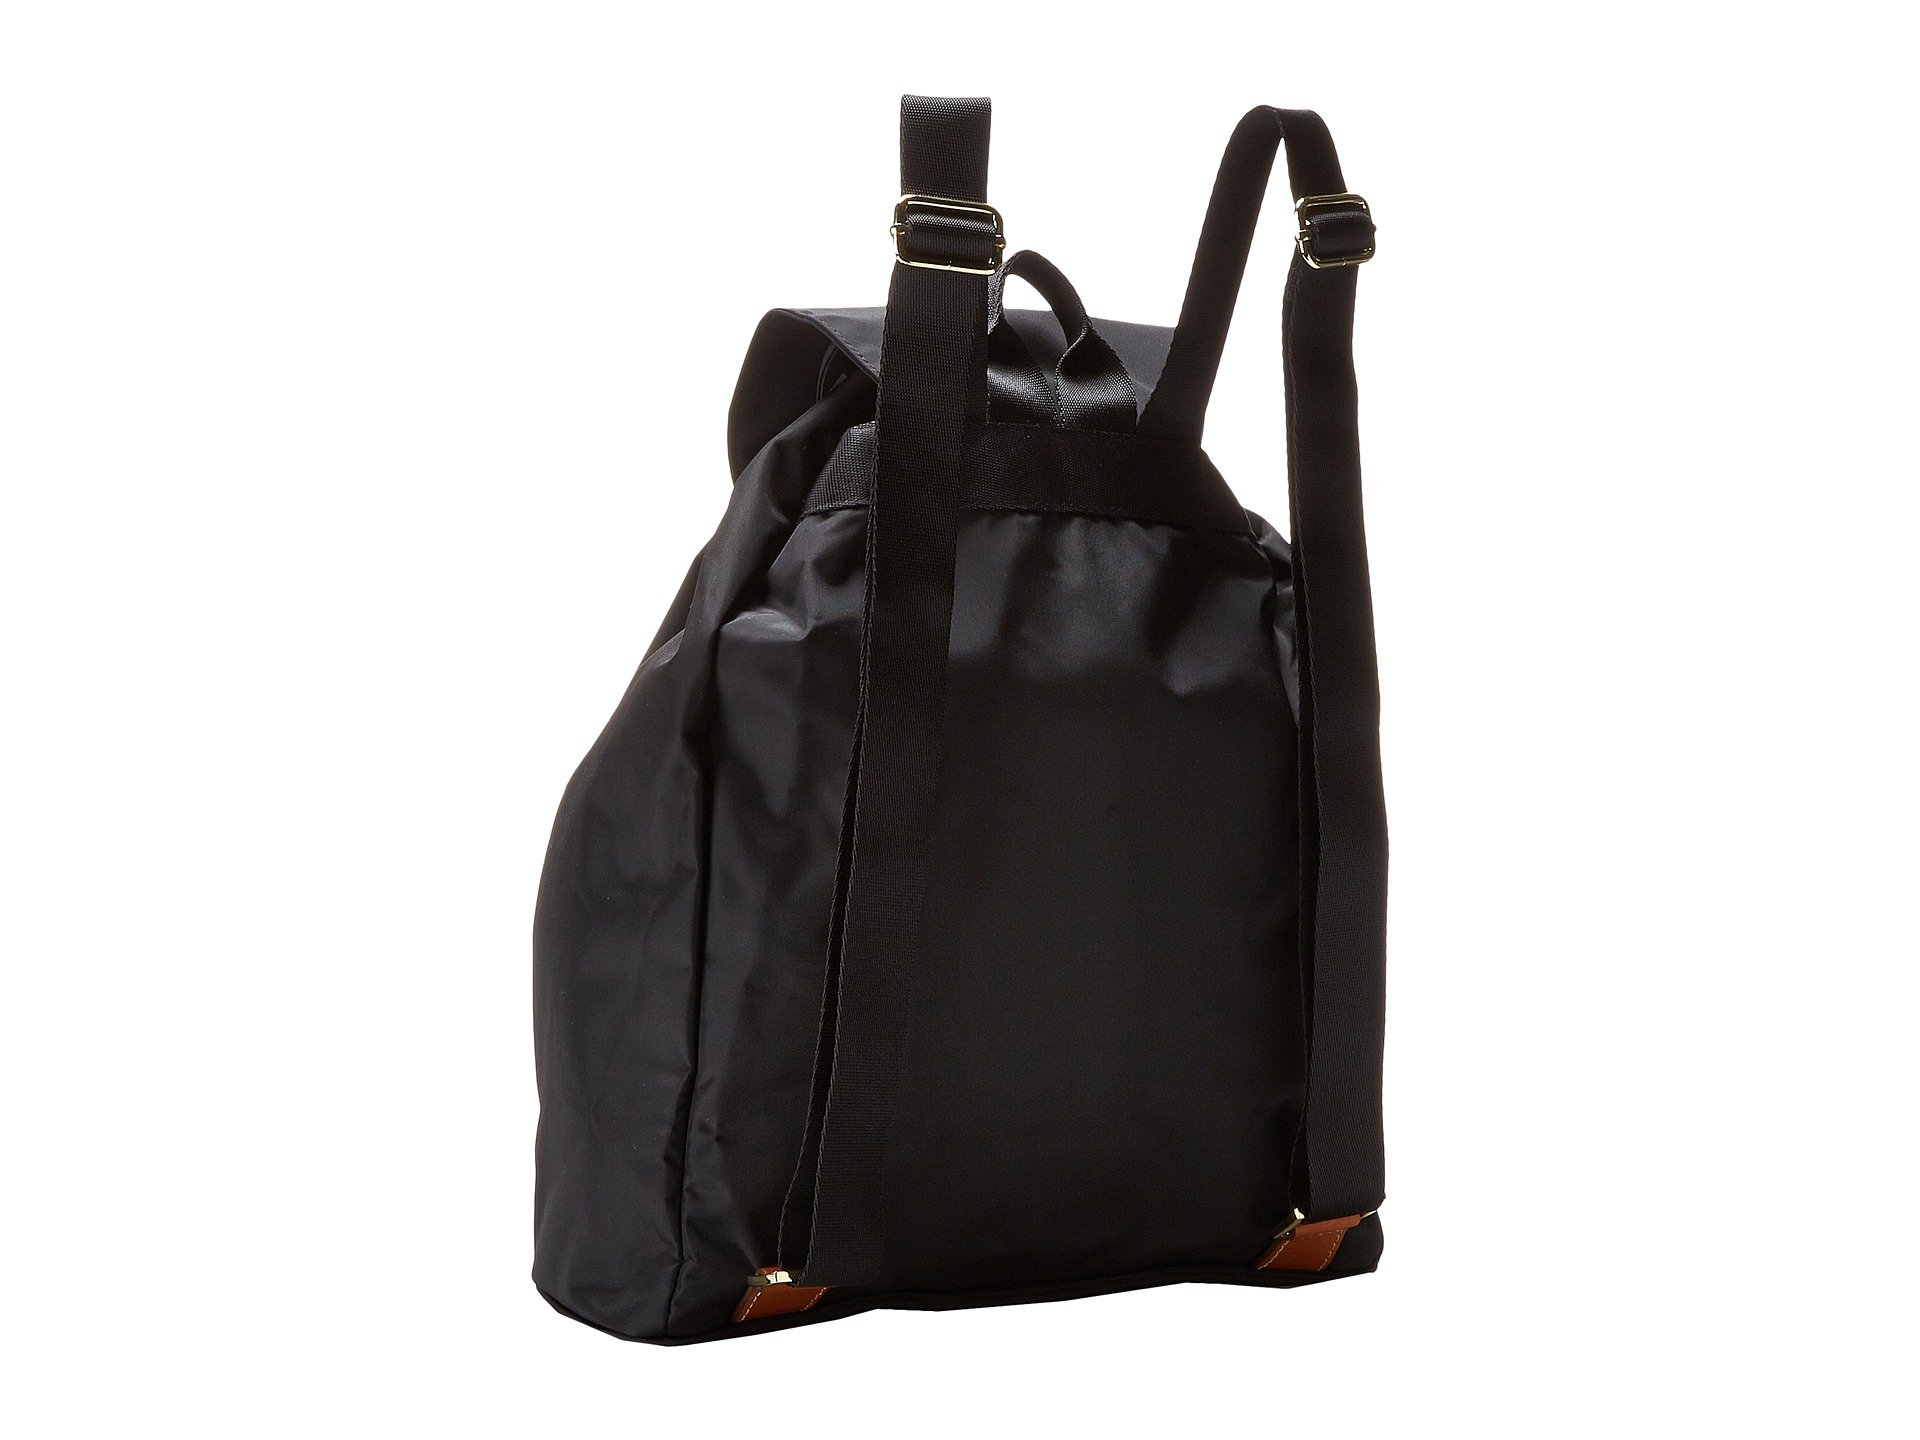 bag Backpack Milano Black X Bric's f0w8qBpW